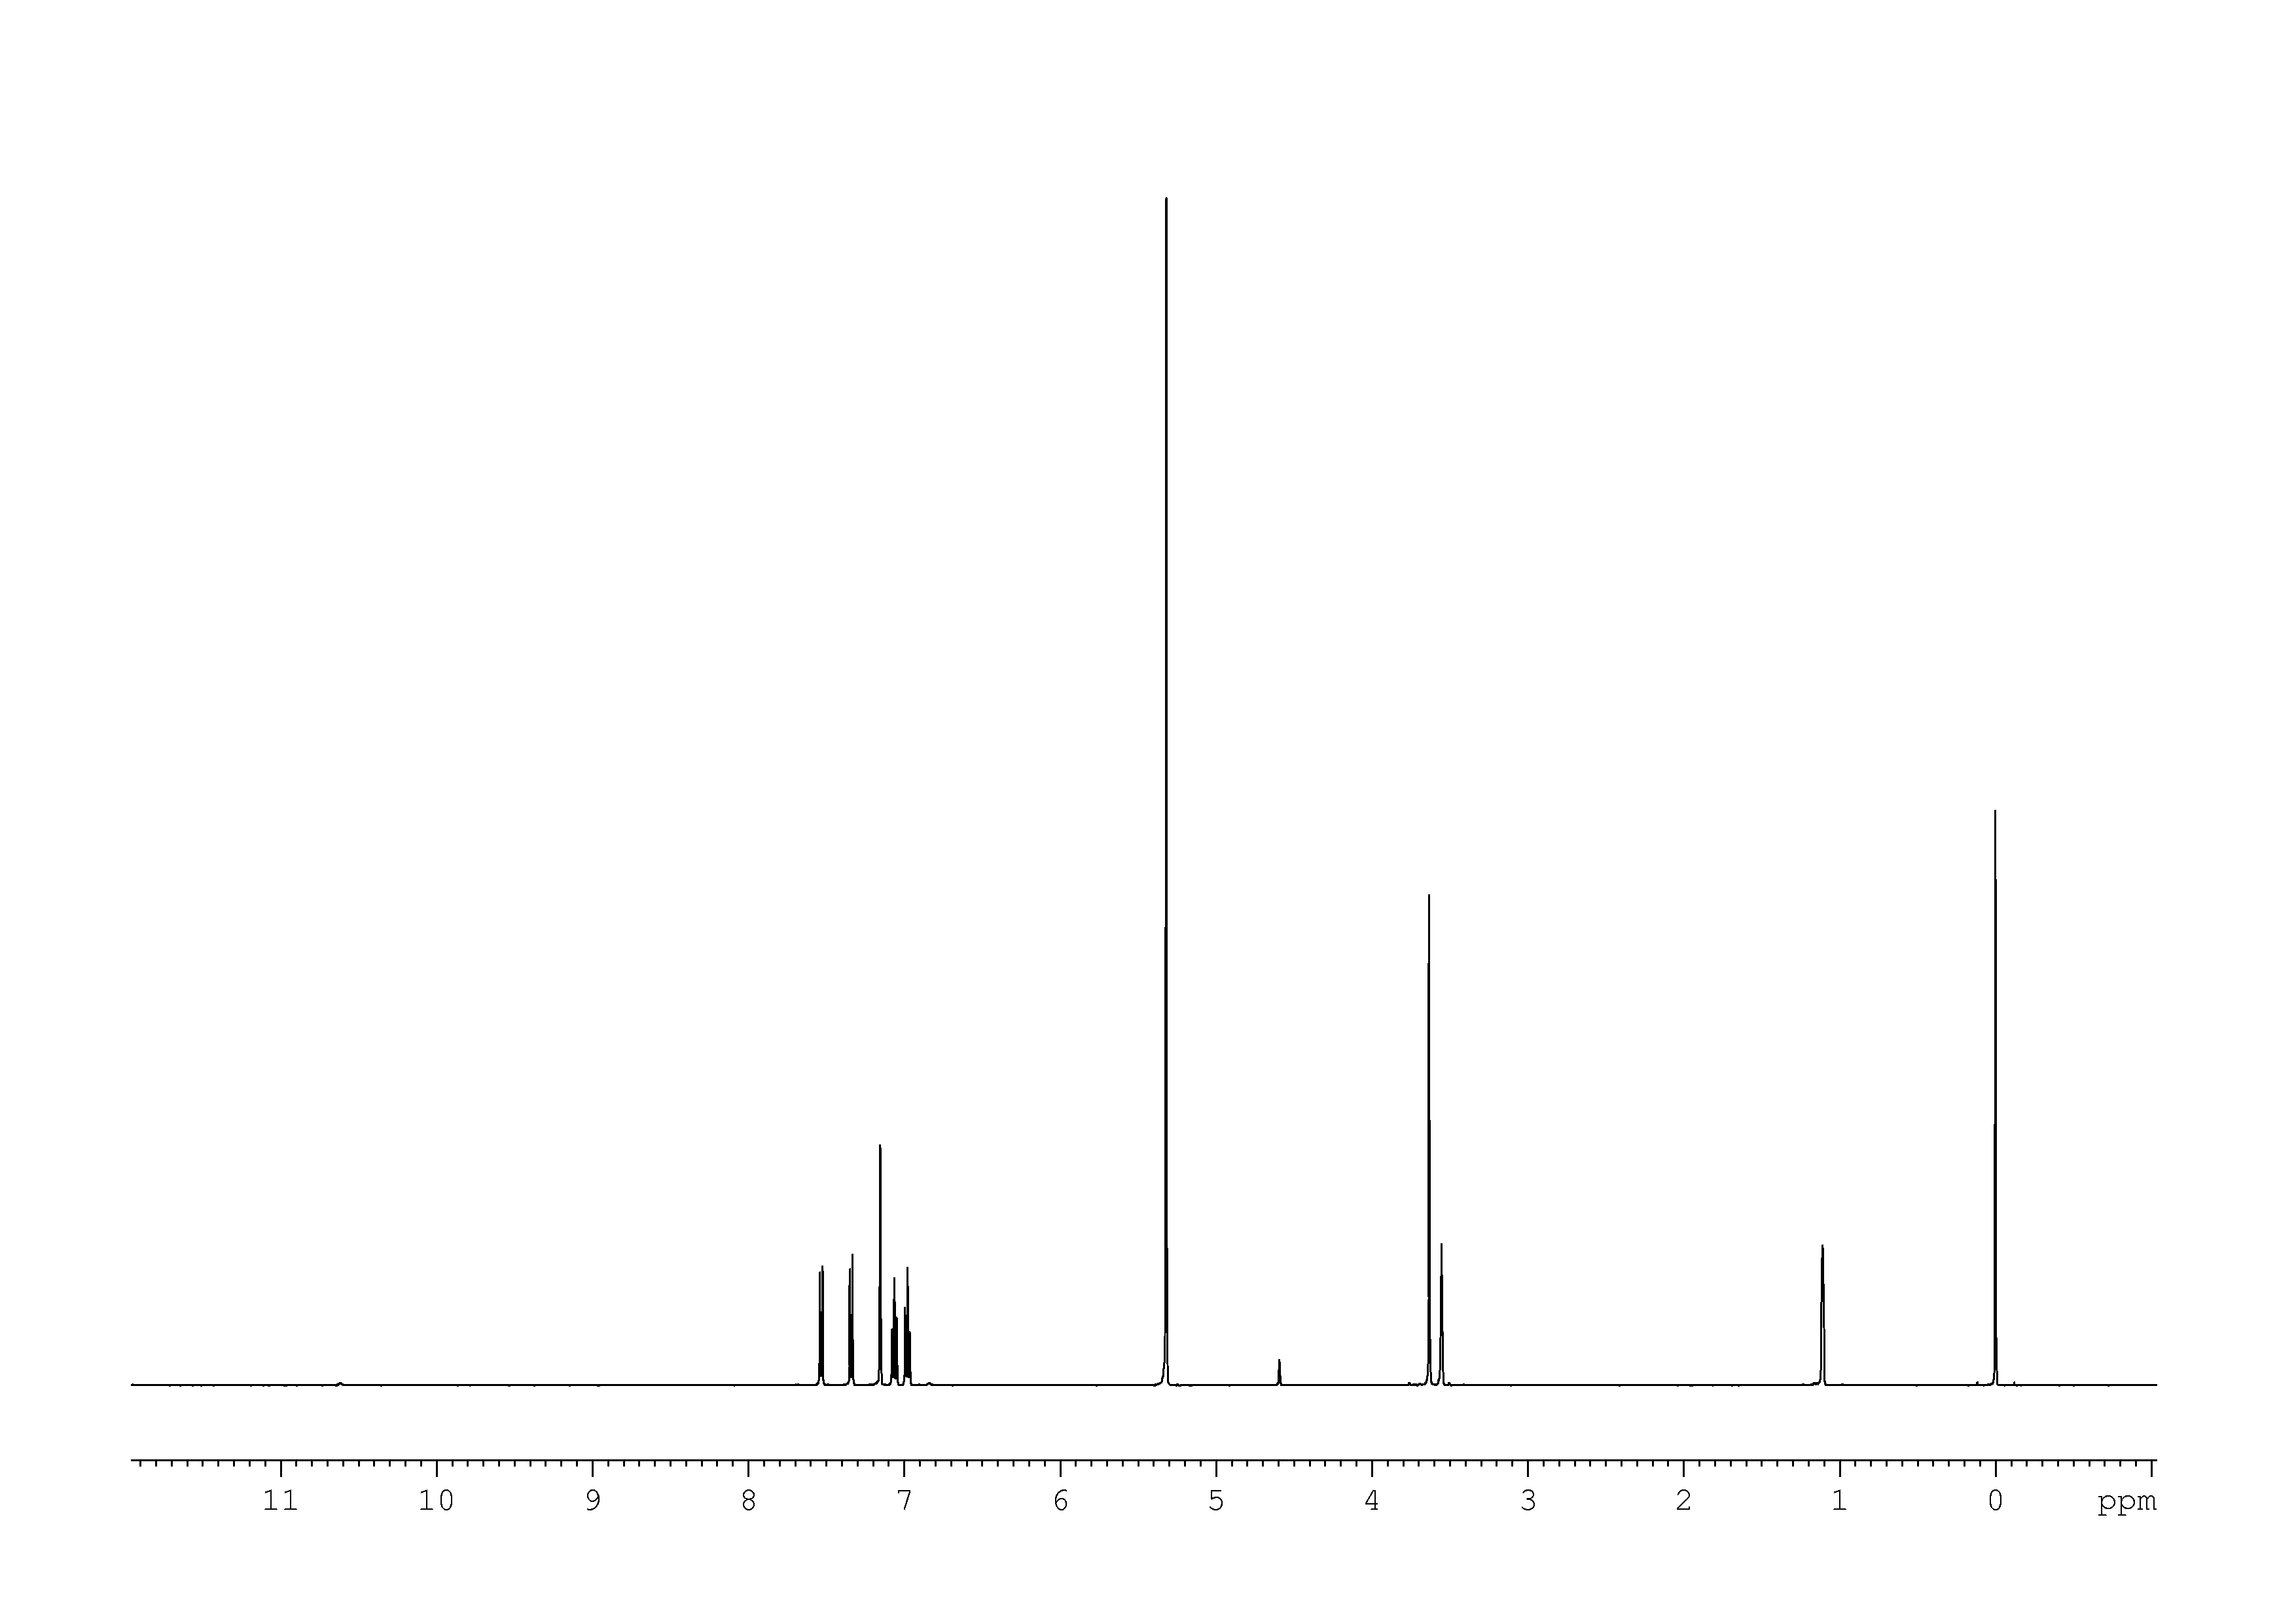 1D 1H, n/a spectrum for indole-3-acetamide